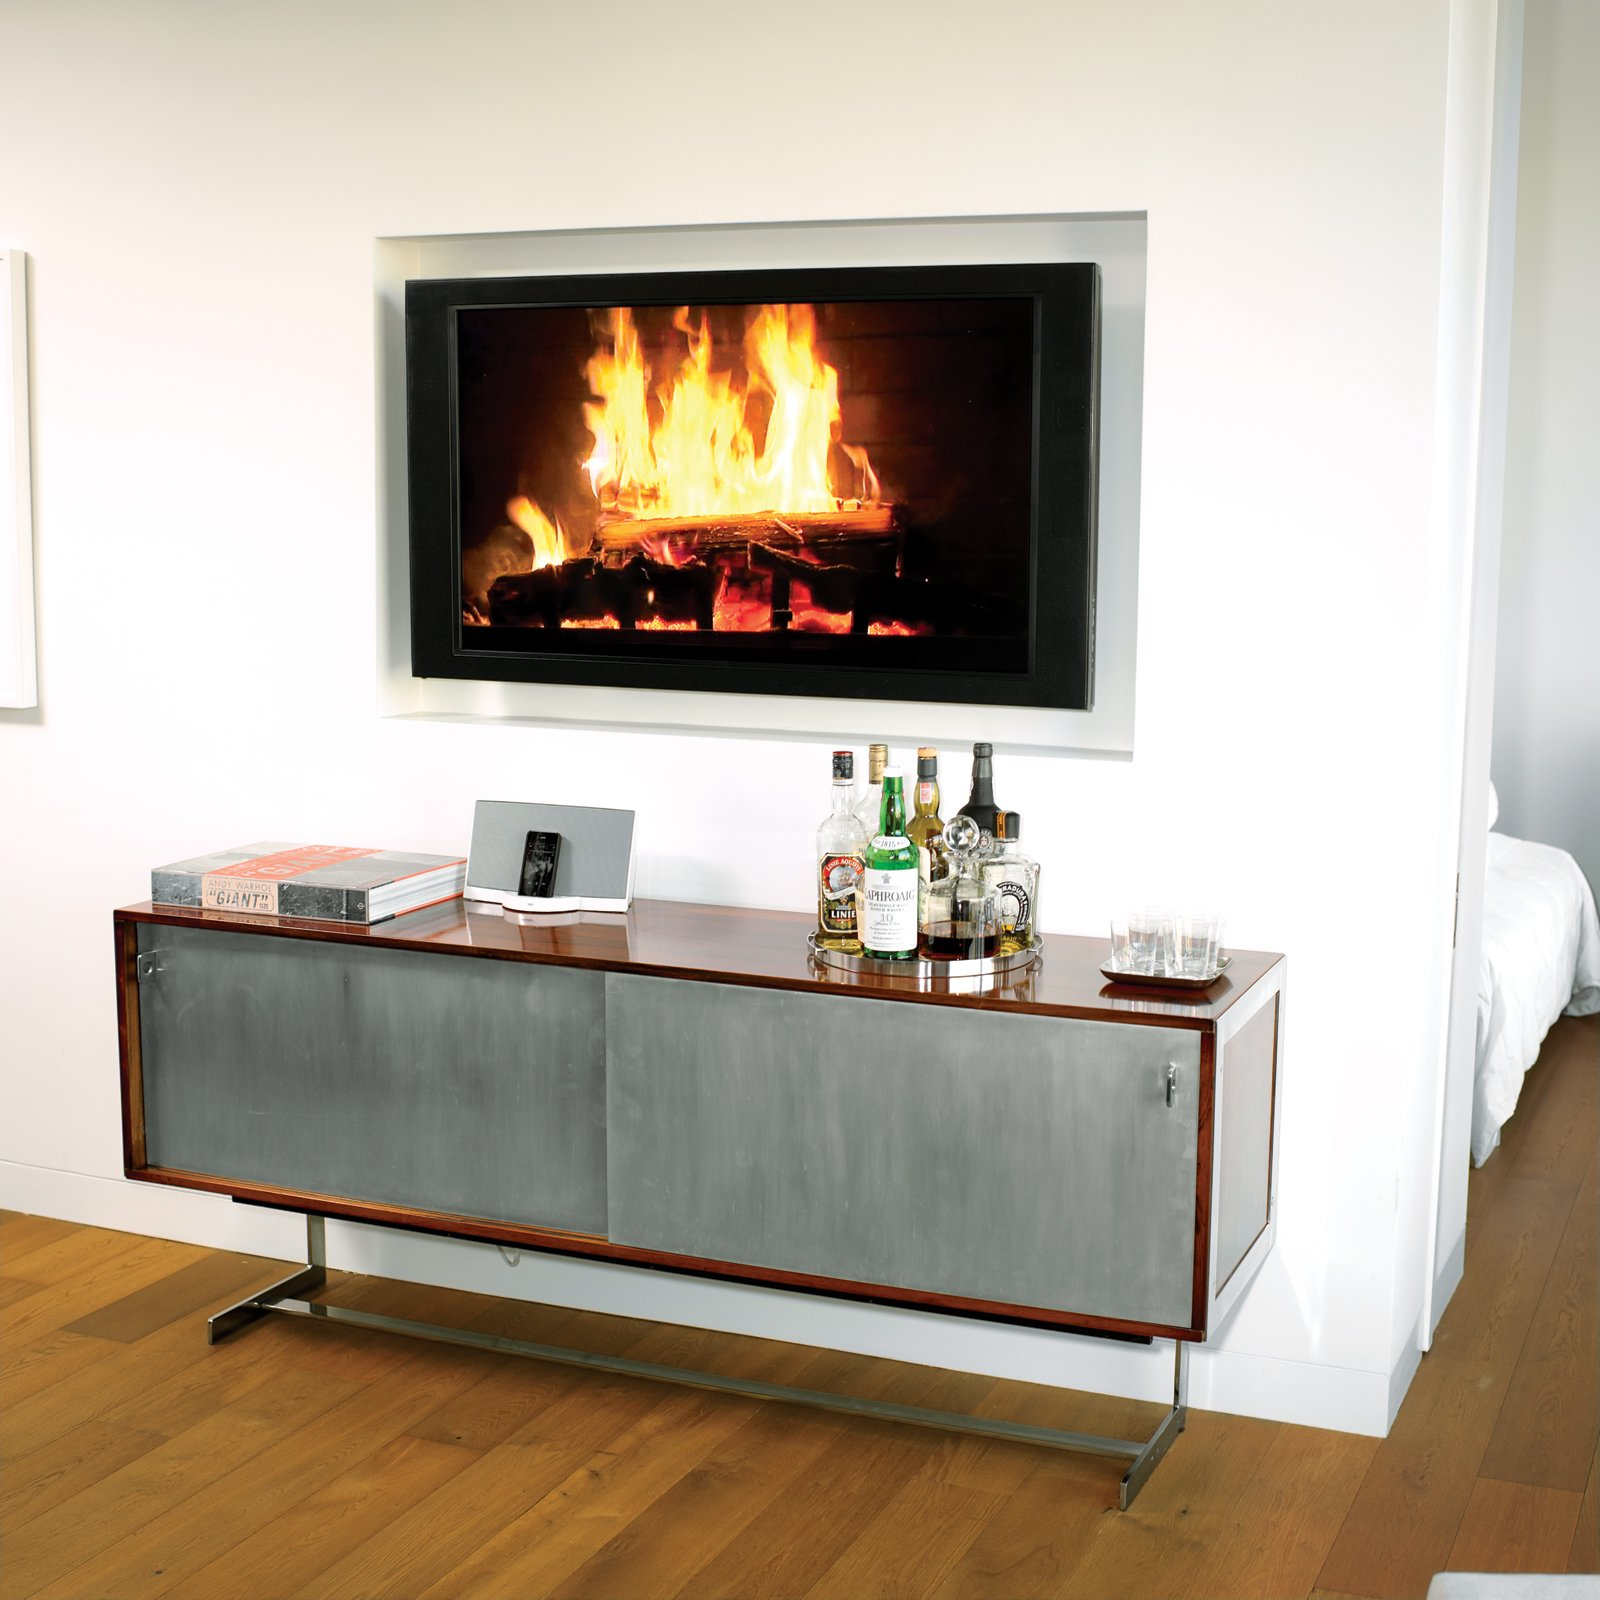 """No room for a built-in bar? Wing it, like architect Cass Calder Smith did in his SoHo apartment, with a modern cabinet, trays to hold bottles and glasses, and a roaring """"fire.""""Photo by   Brian Finke.  Photo 6 of 14 in High-Rise Living in Manhattan"""